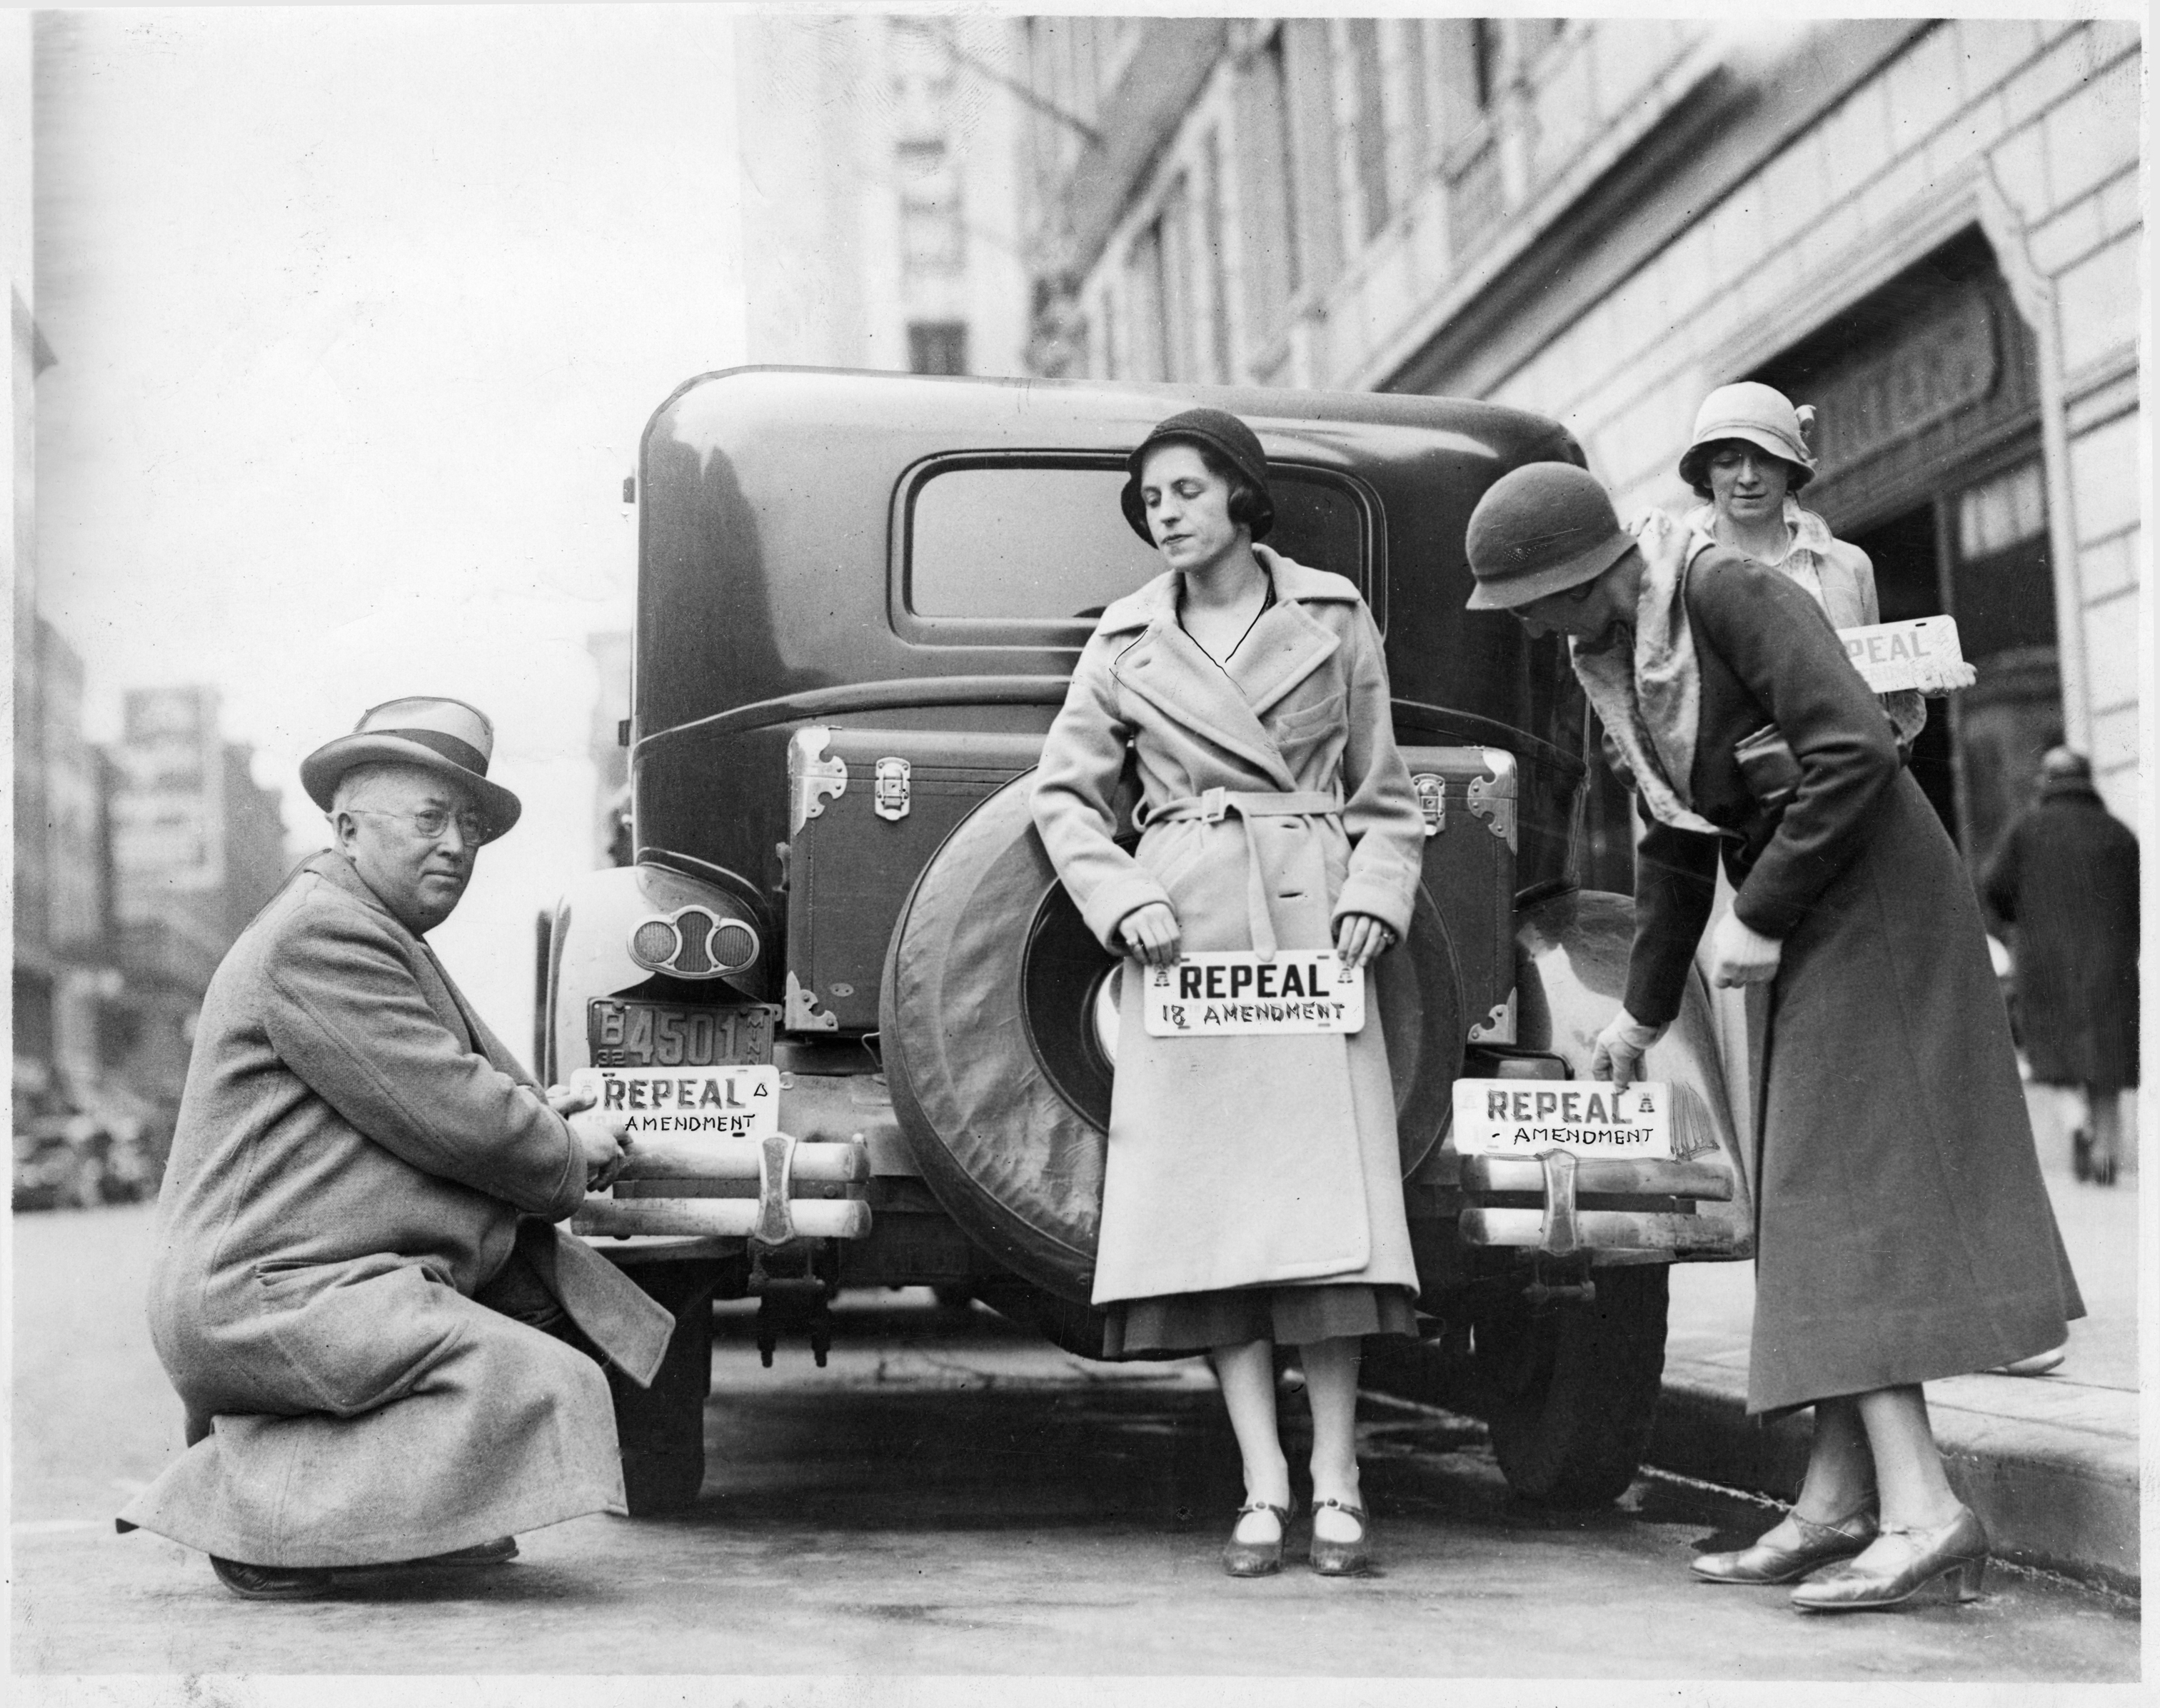 People with bumper stickers advocating the repeal of the 18th amendment (prohibition)